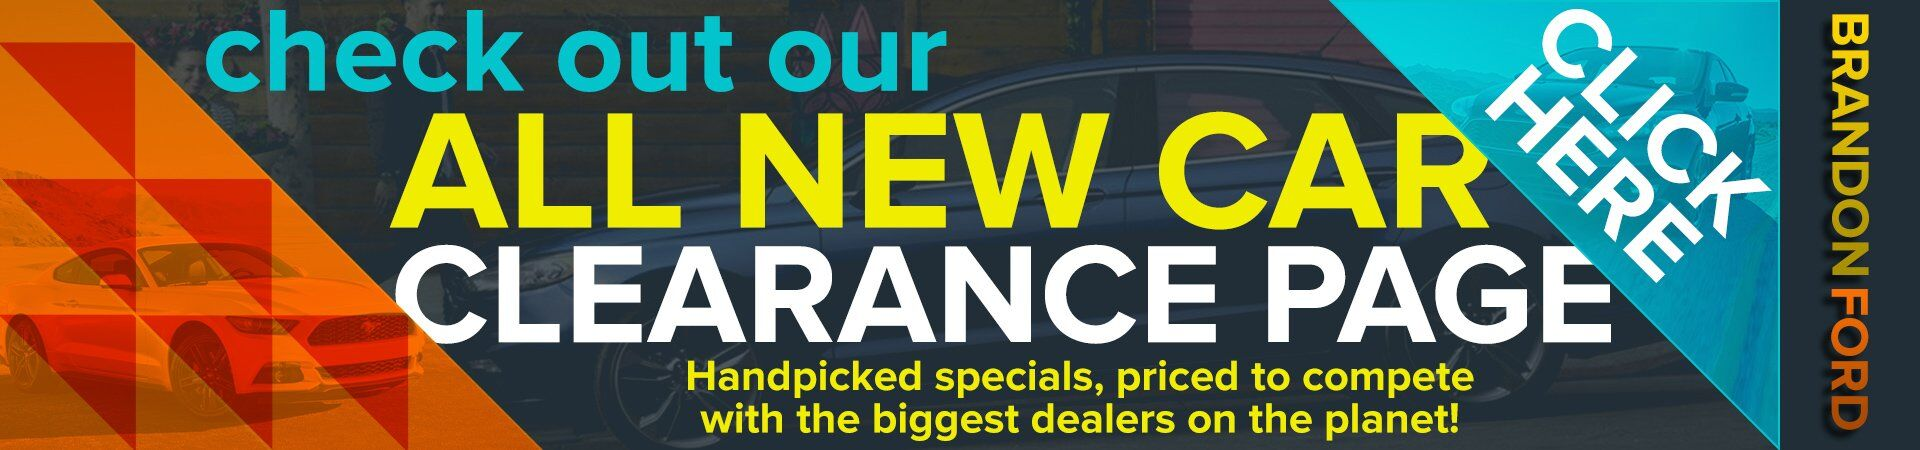 New Car Clearance Page